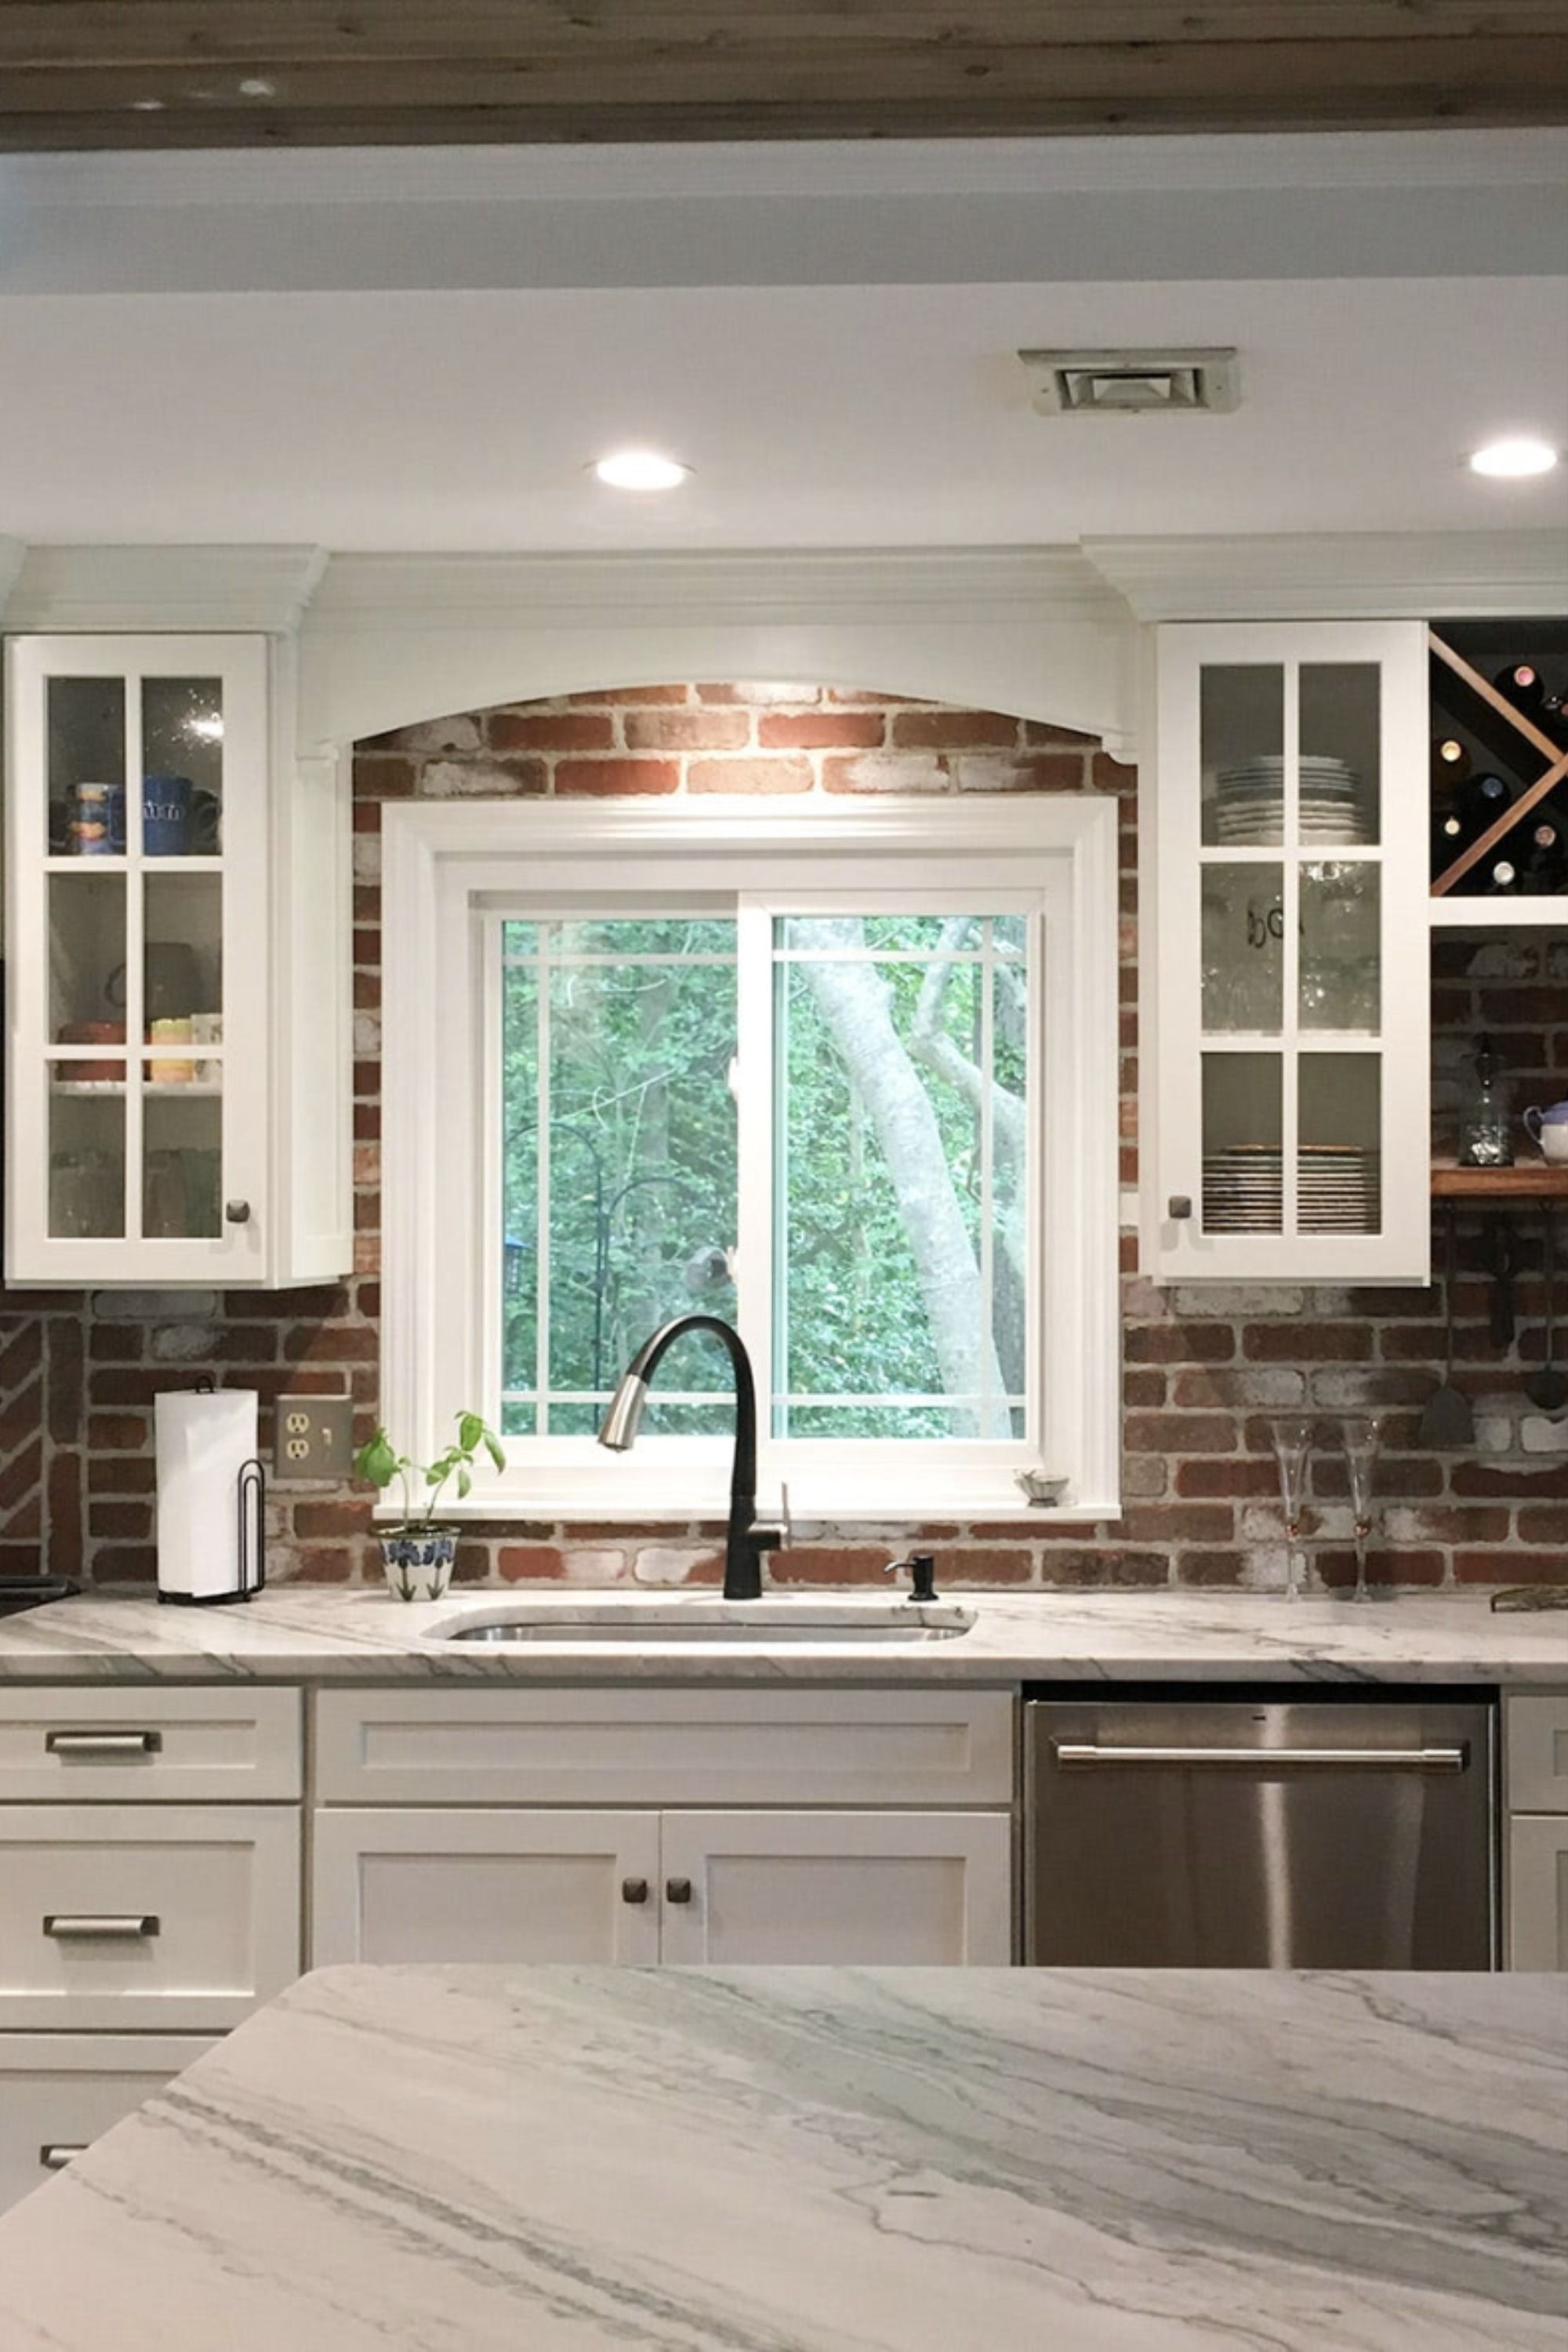 Mixed To Match In 2020 Brick Backsplash White Cabinets Marble Countertops